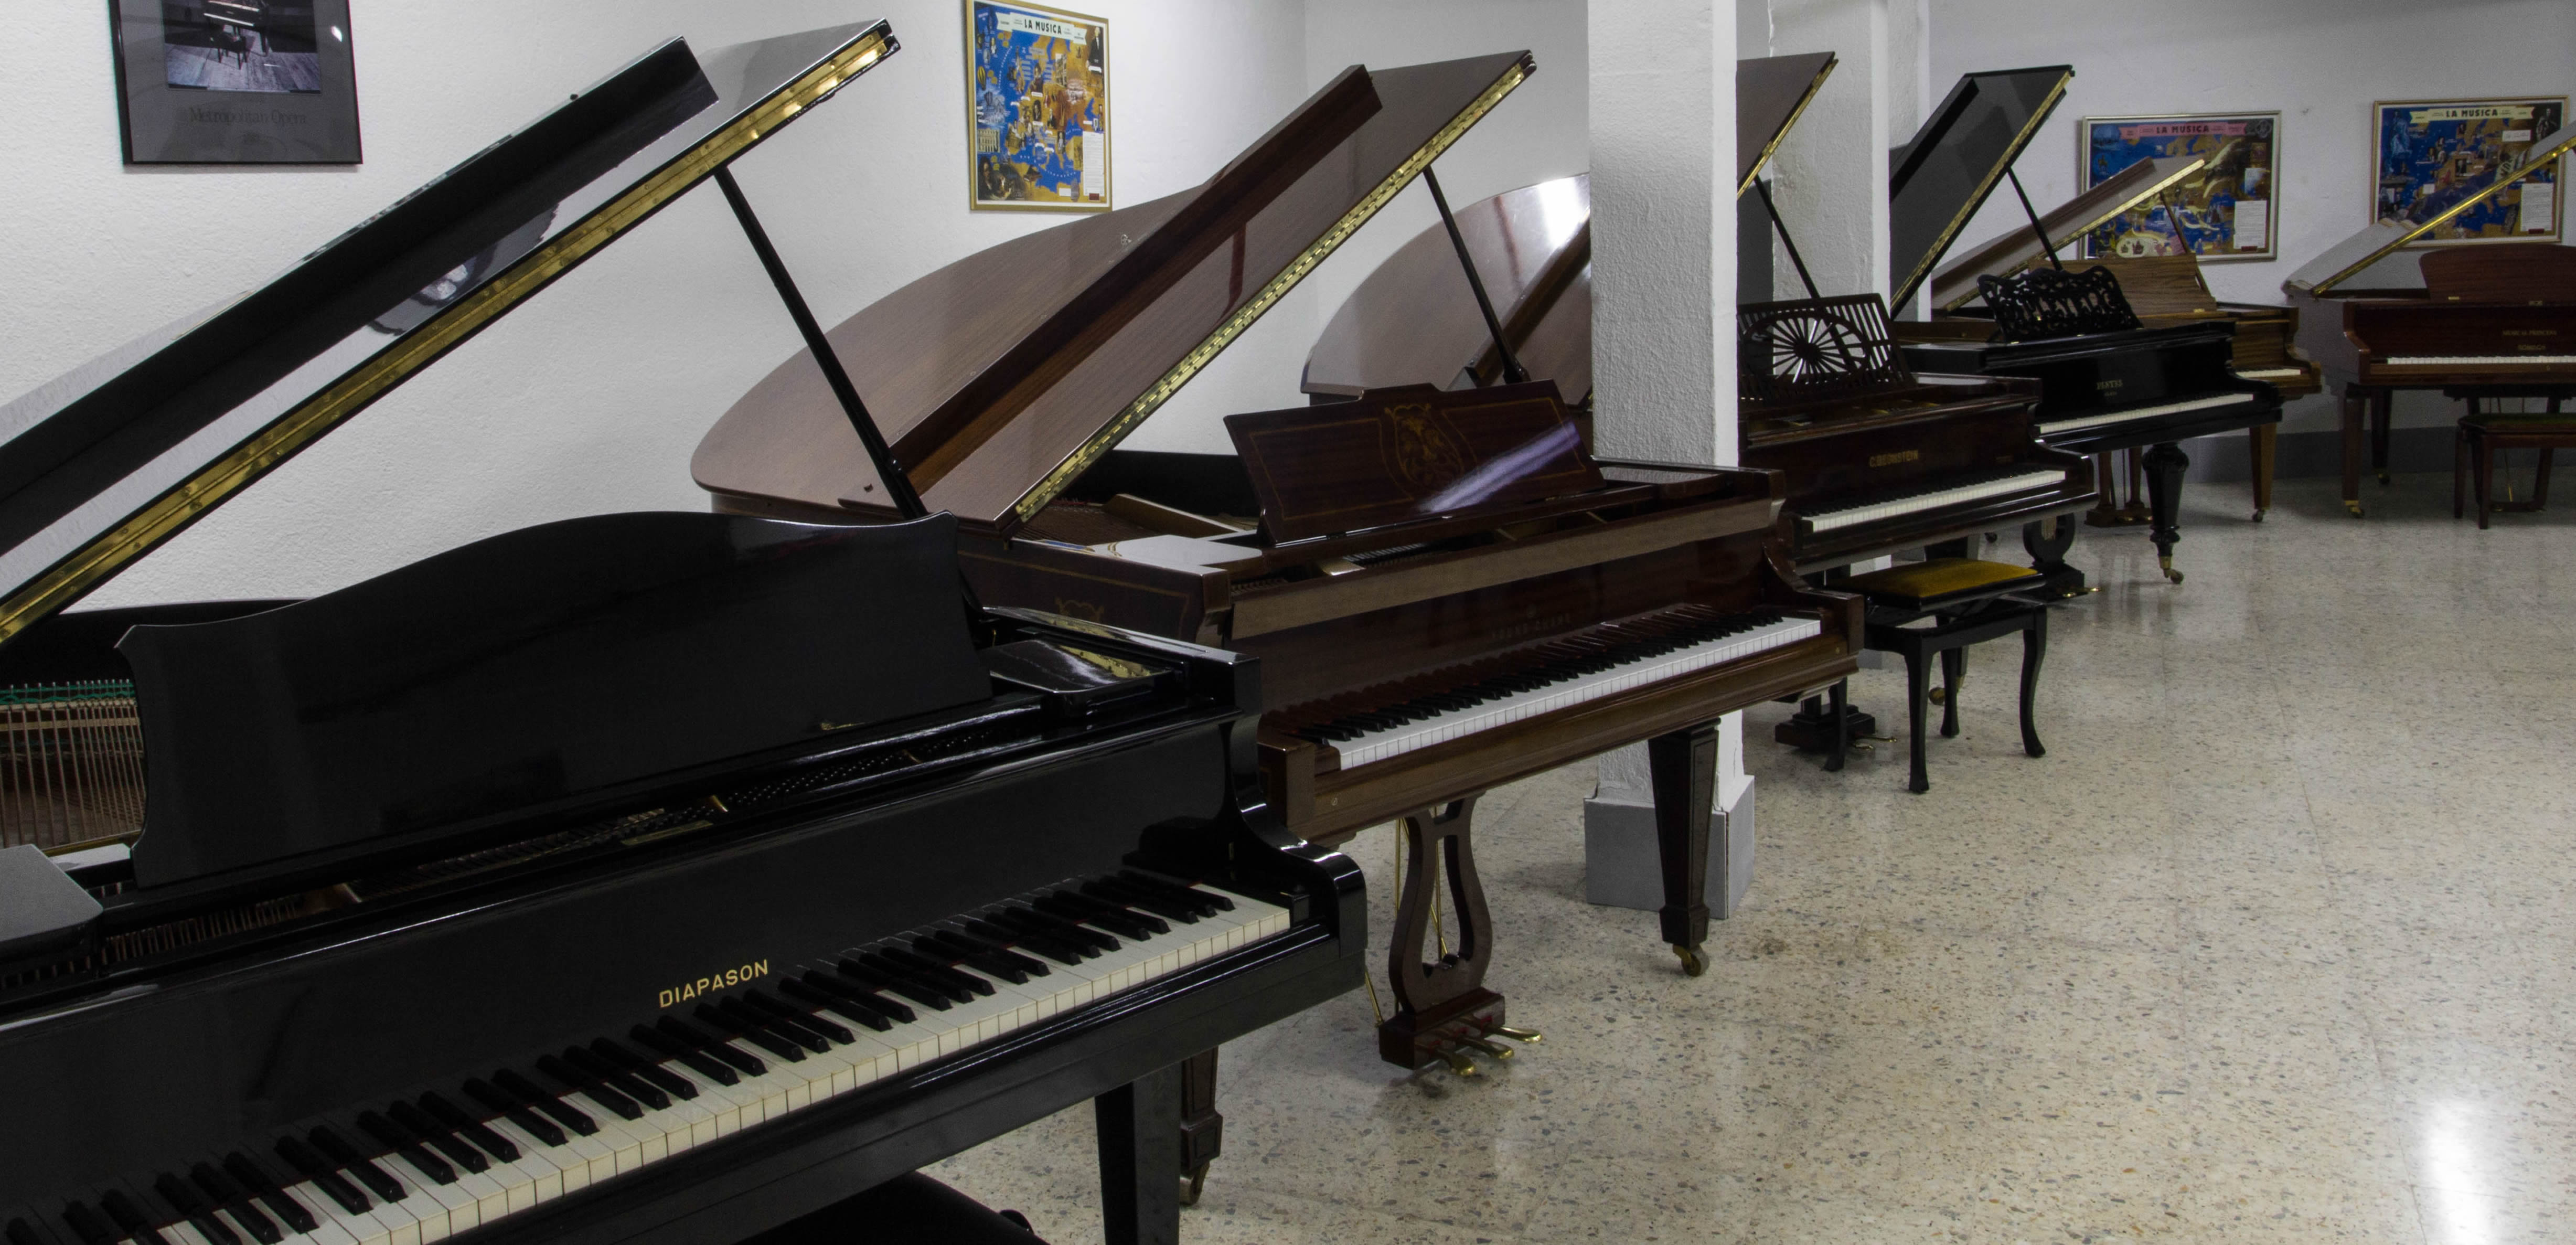 PIANOS COLA MUSICAL PRINCESA CARPETANA